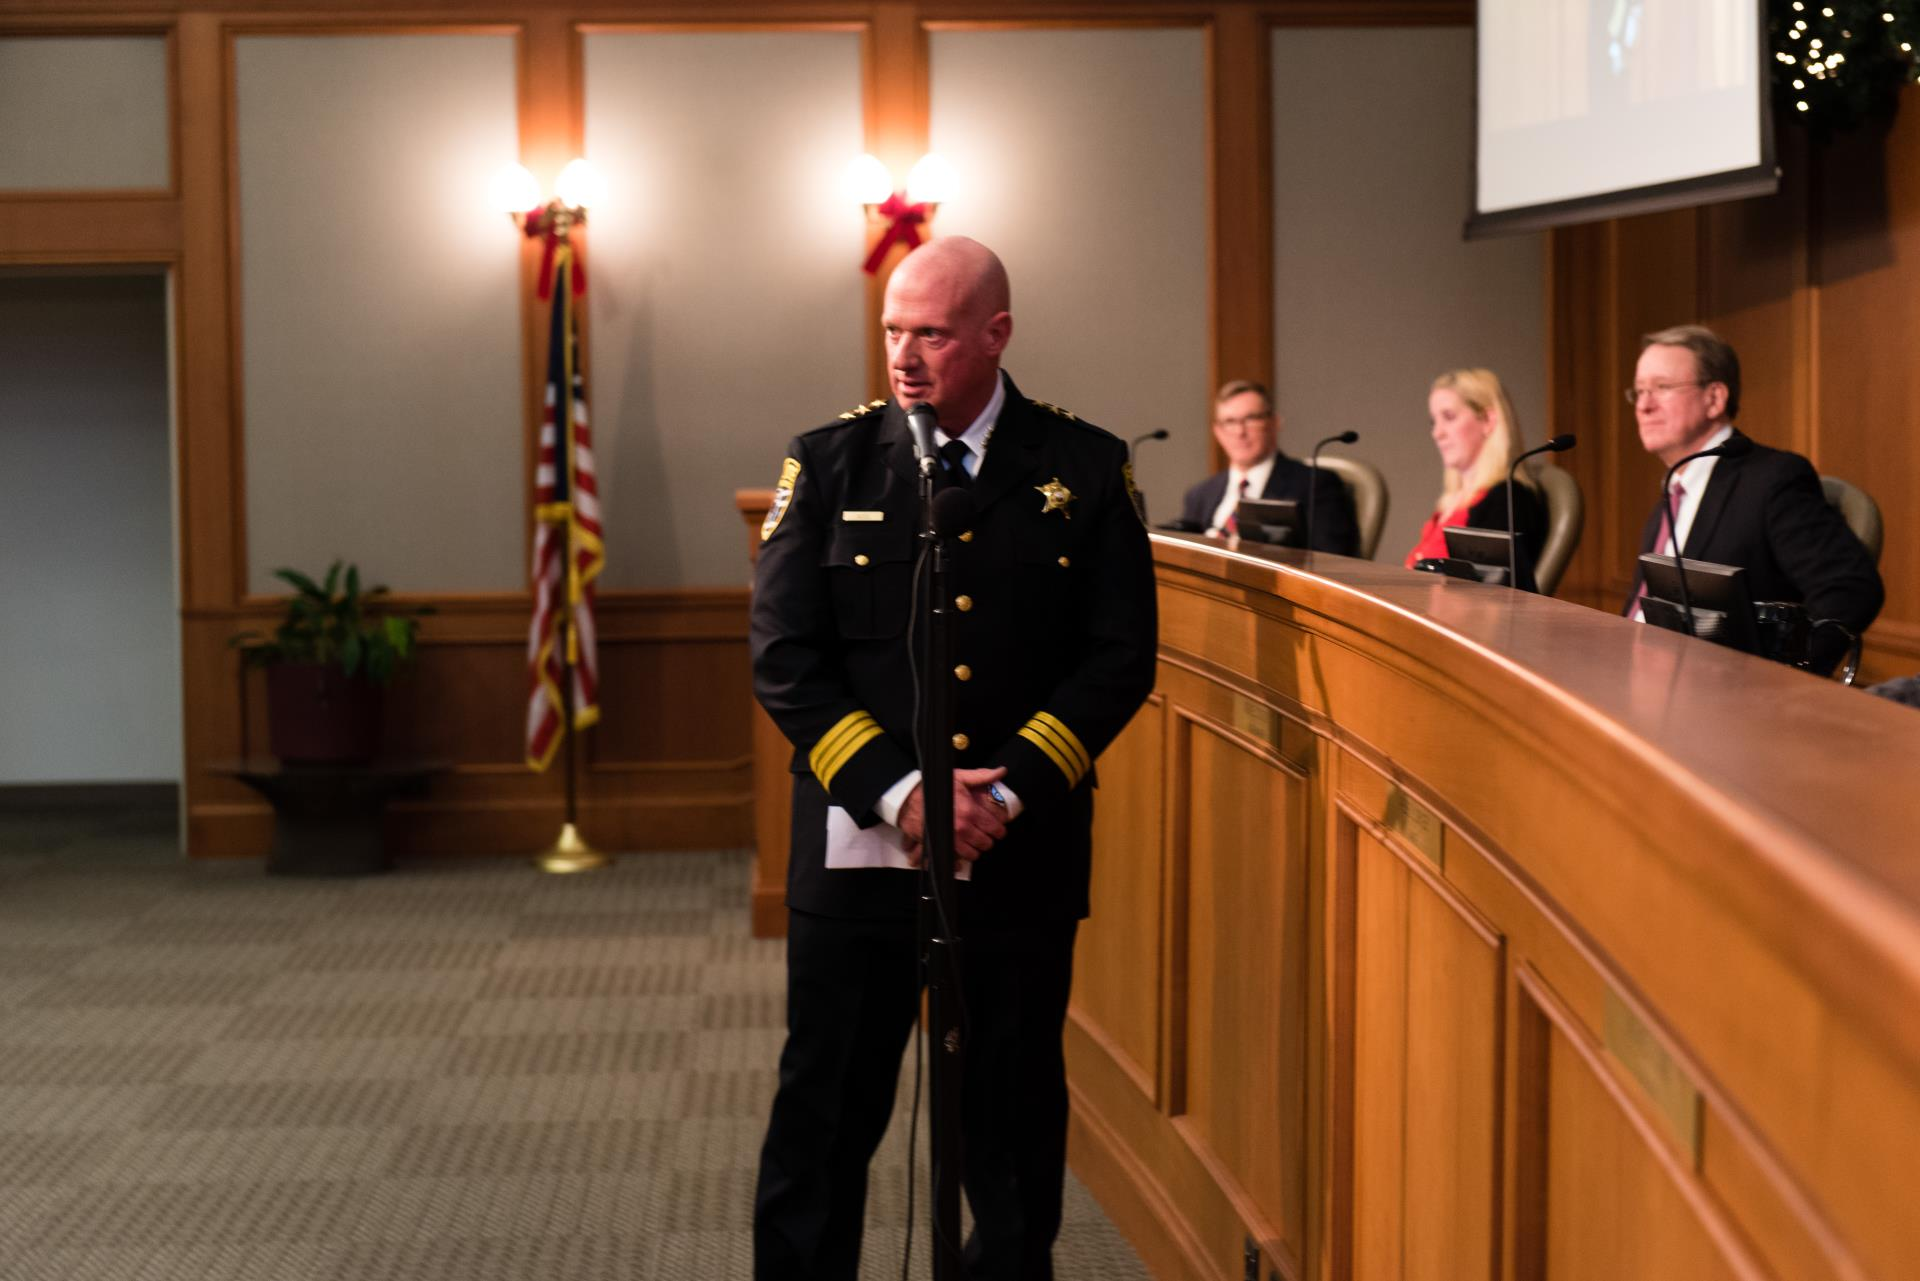 Chief Koziol Swearing-In Ceremony Final-4235